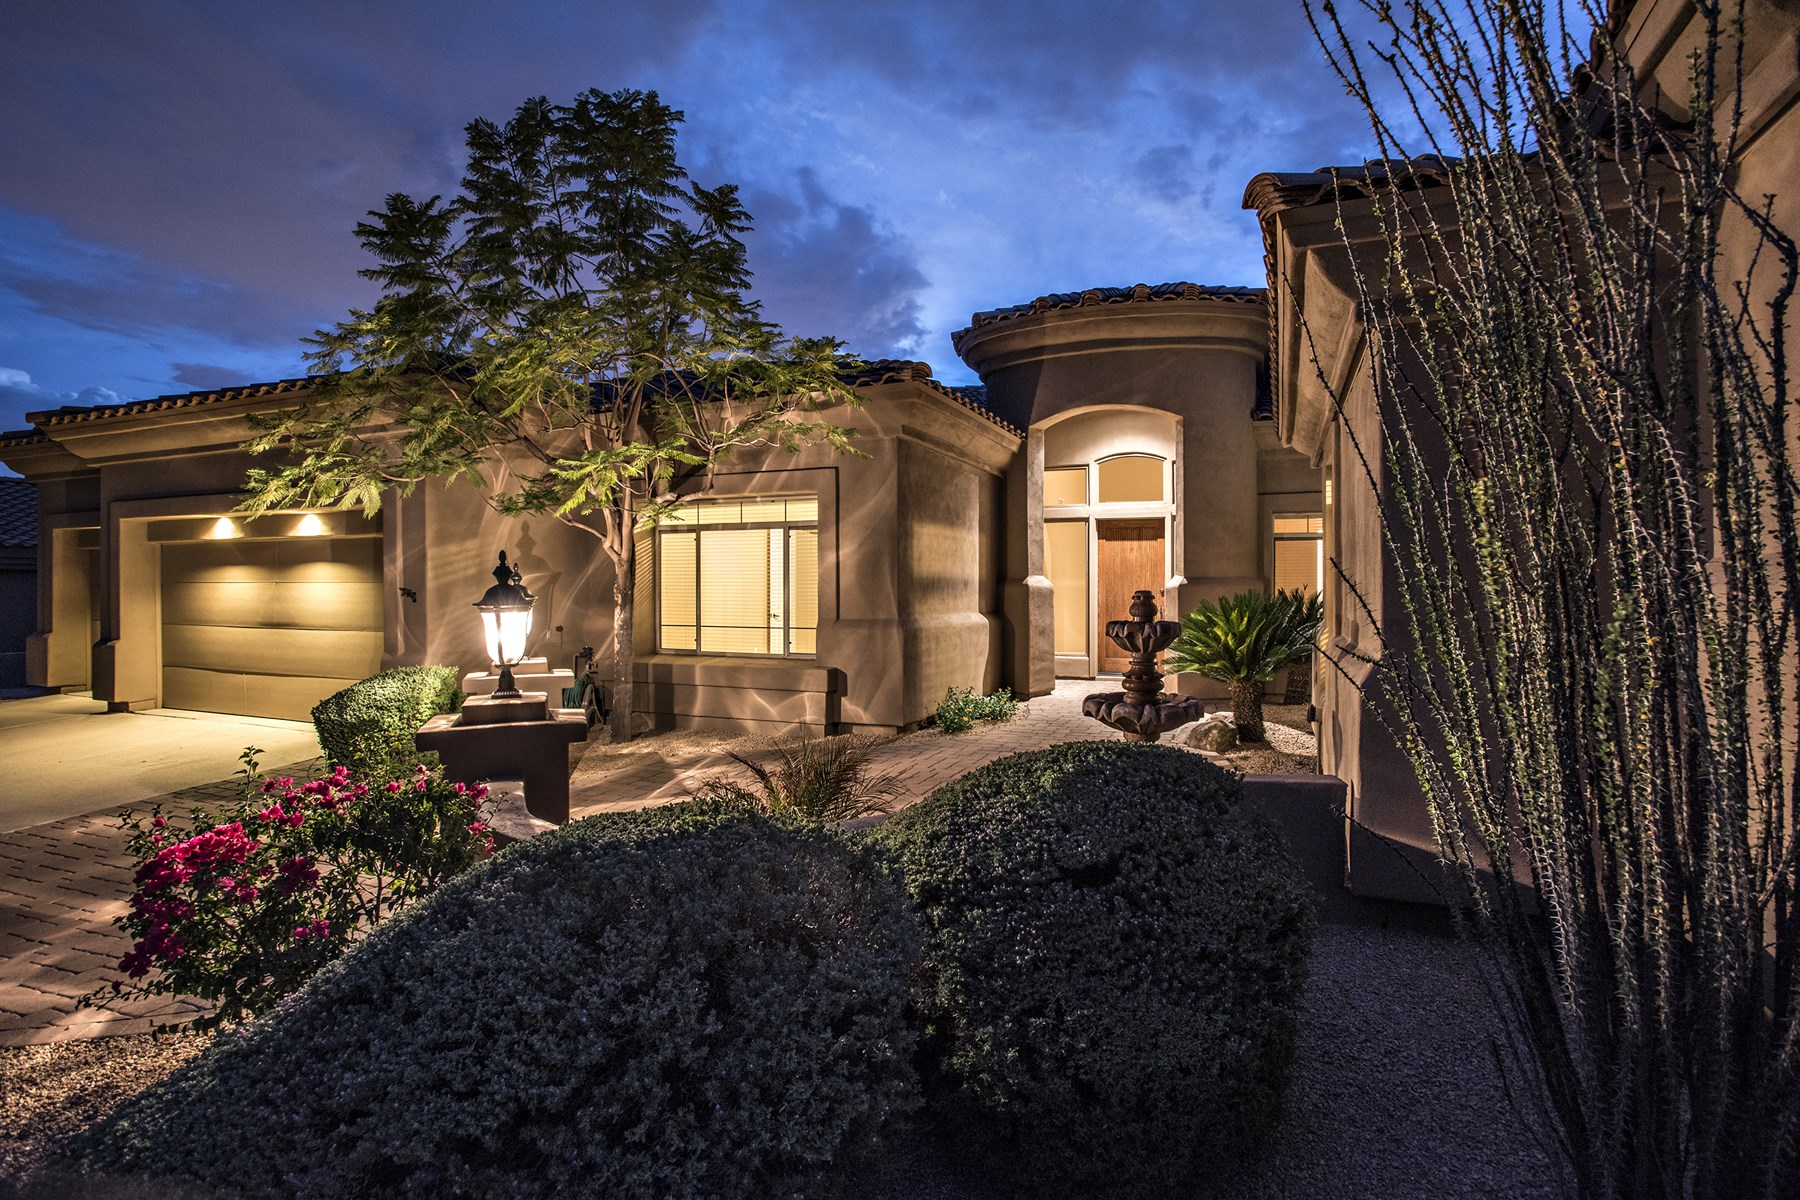 Single Family Home for Sale at Five bedroom, four bath home in Canyon Ridge 12064 N 123RD WAY Scottsdale, Arizona 85259 United States